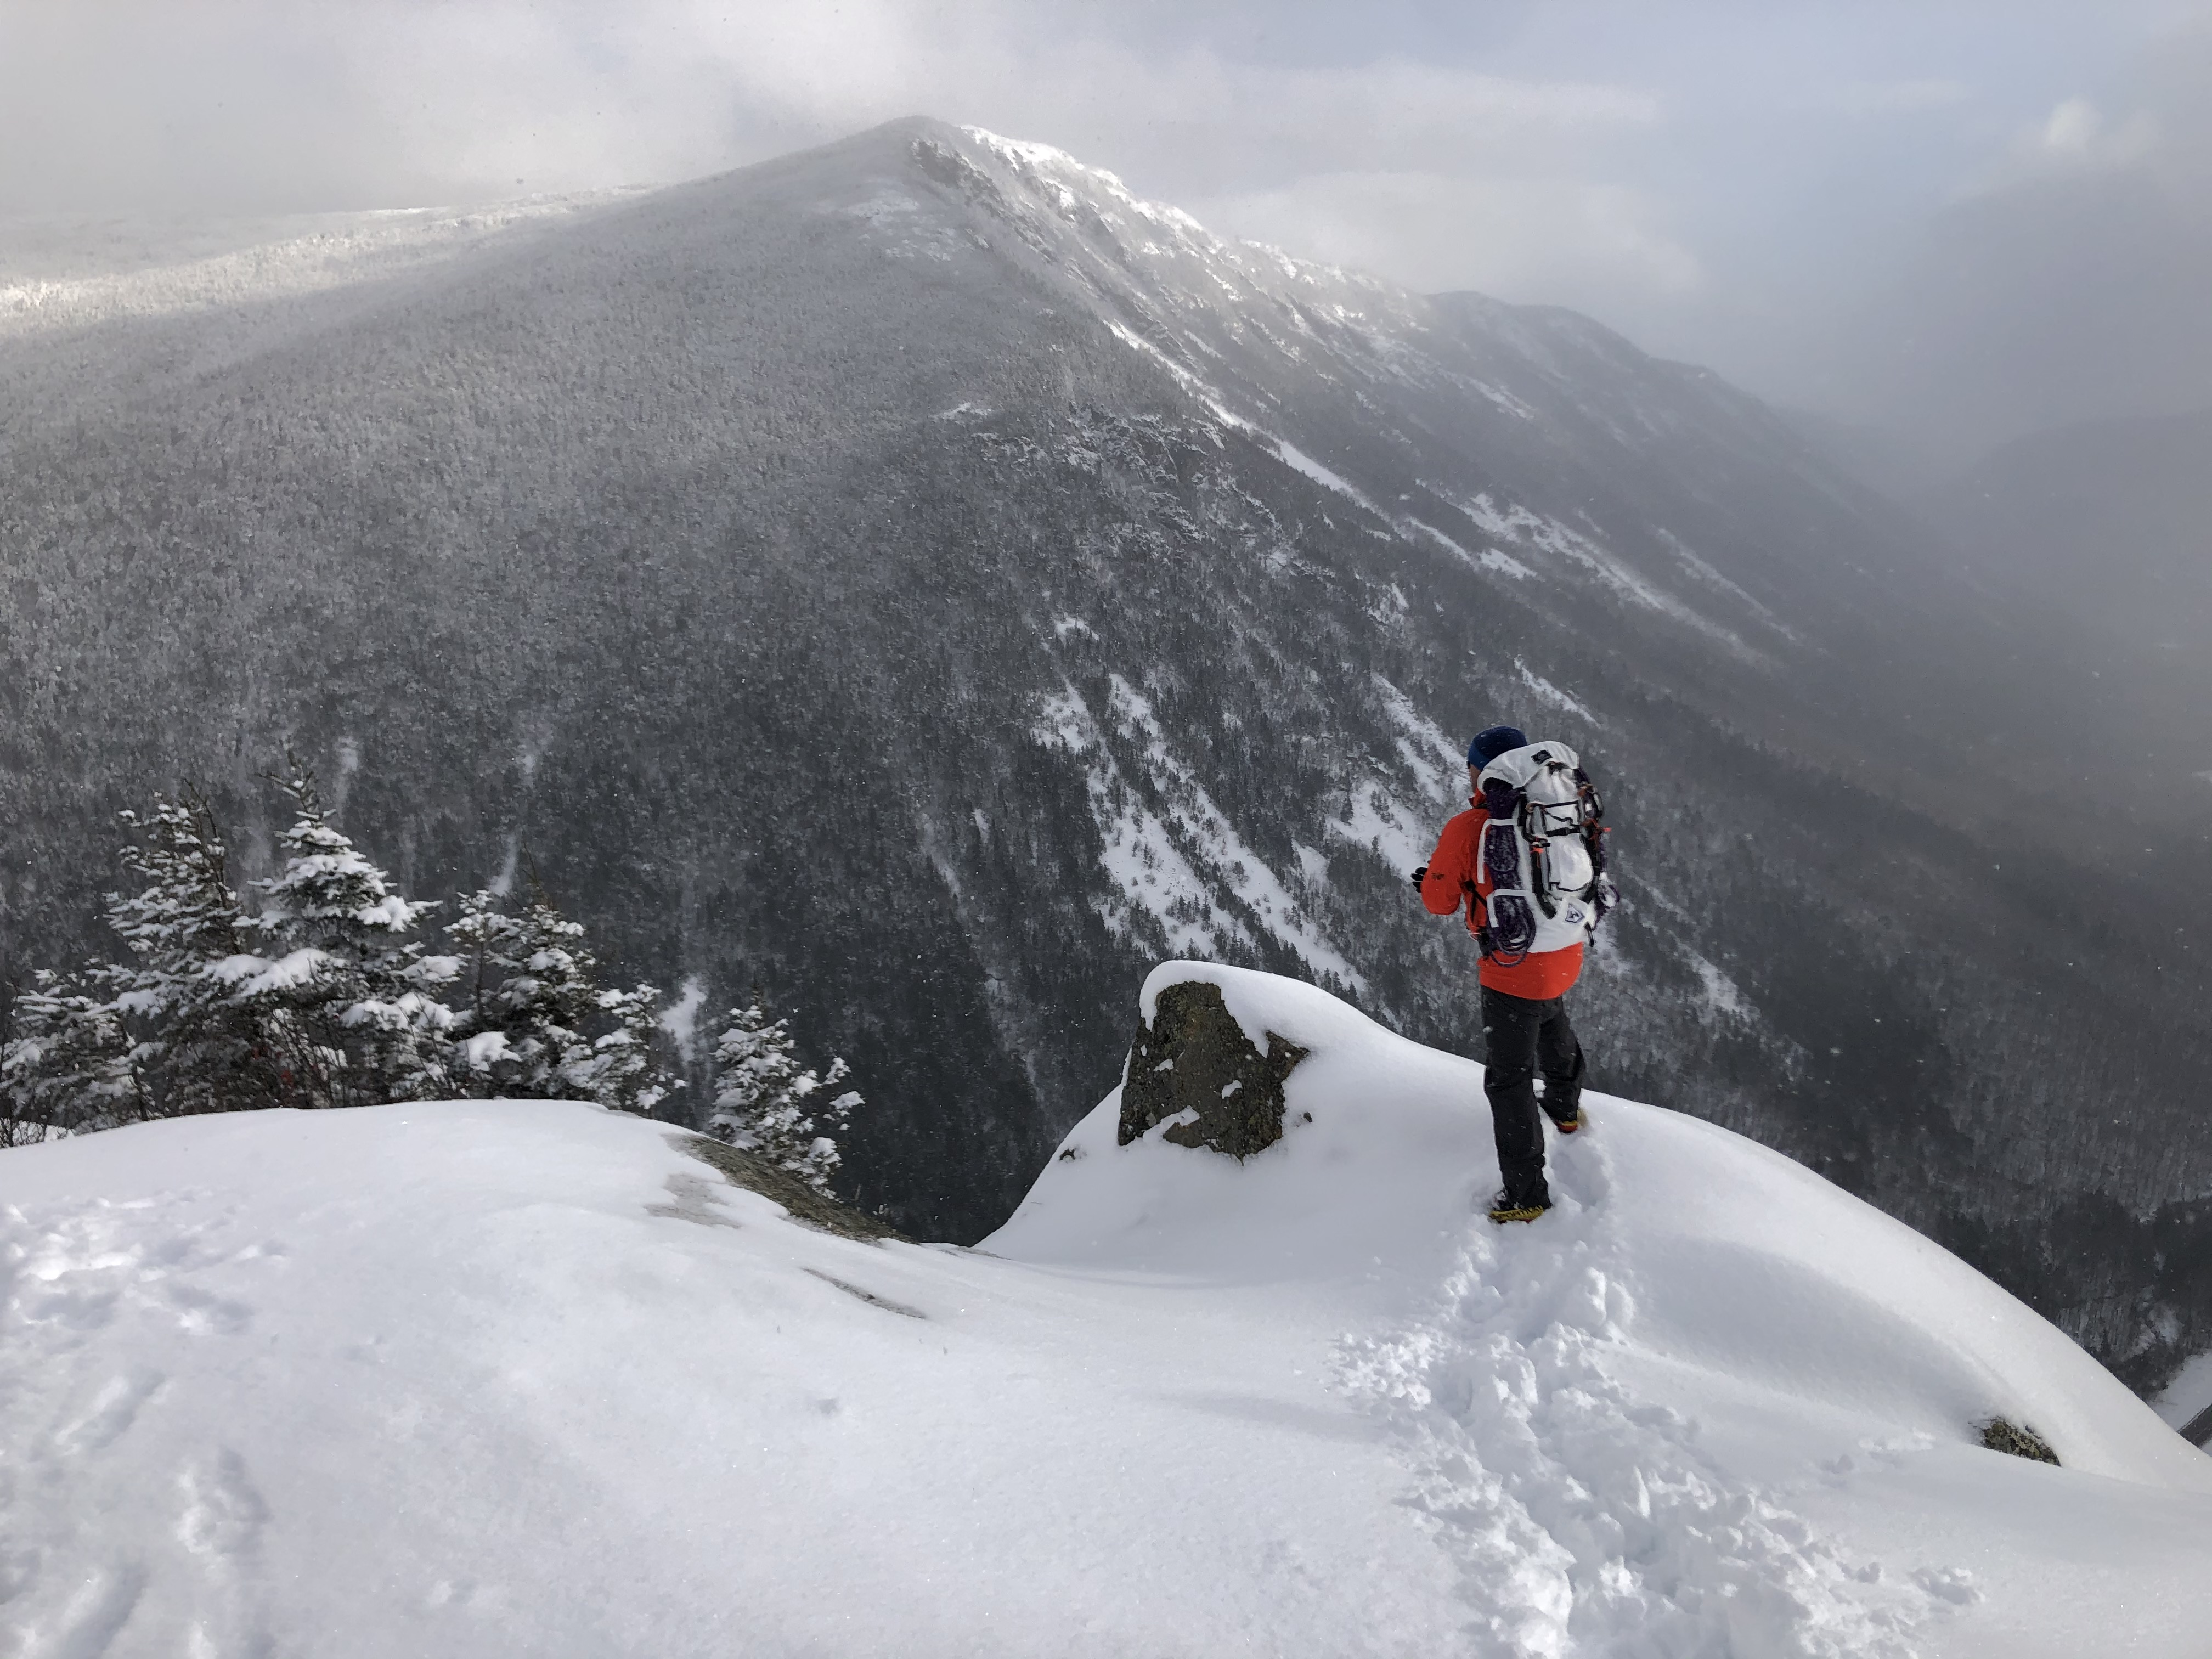 Hyperlight Mountain Gear Prism Pack Review